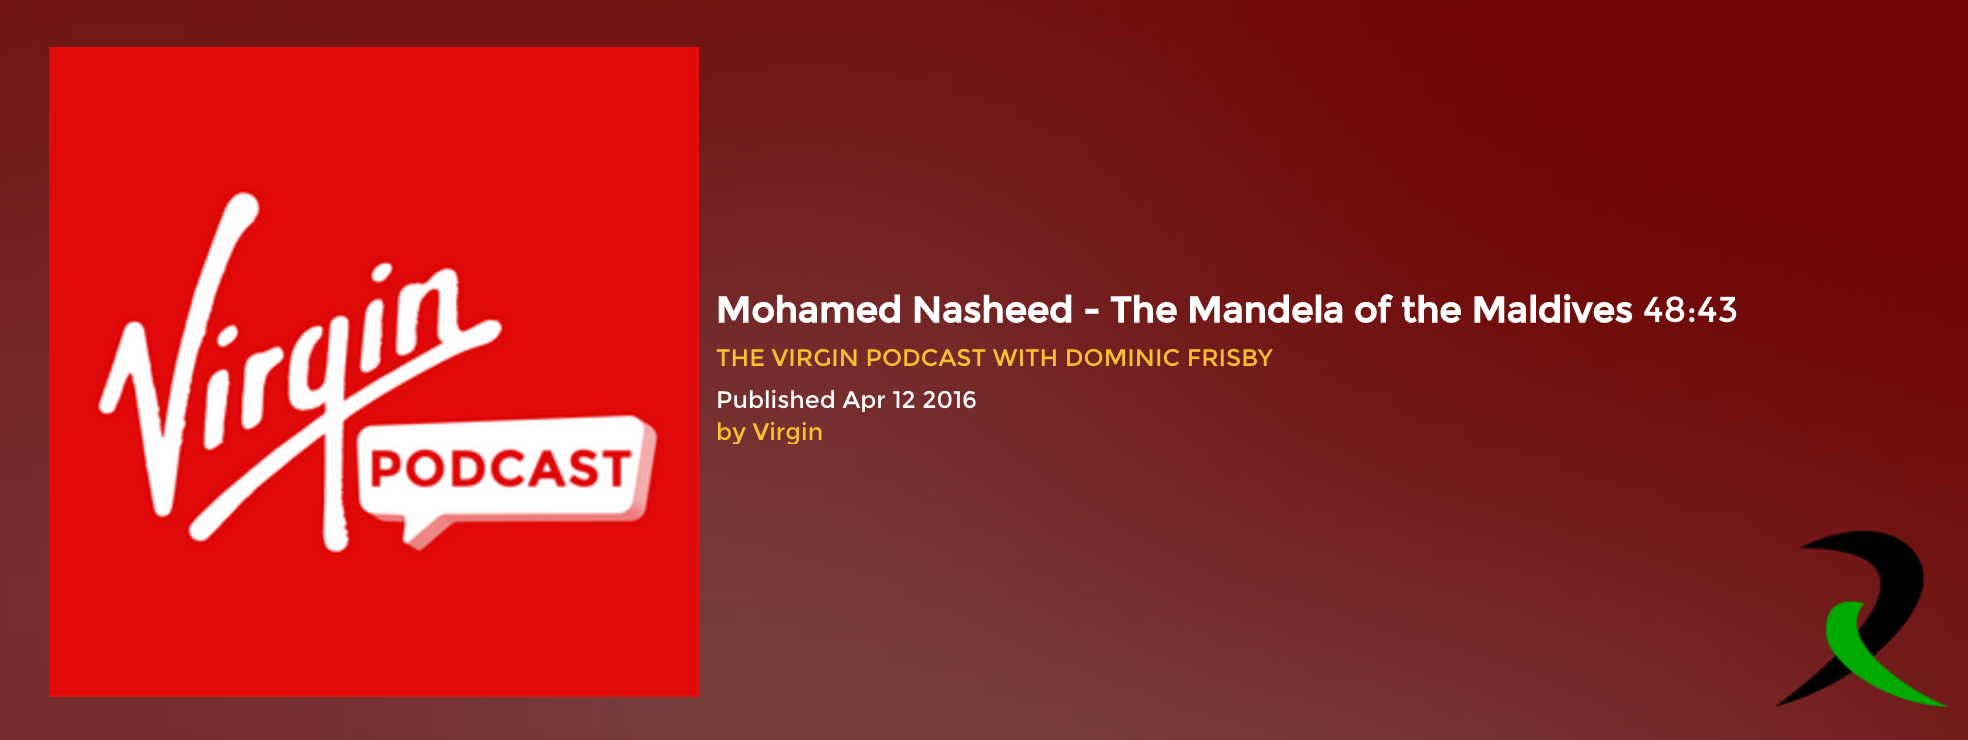 The Virgin Podcast with Dominic Frisby 2016.04.12 Mohamed Nasheed WEB MP3-DhiRLS